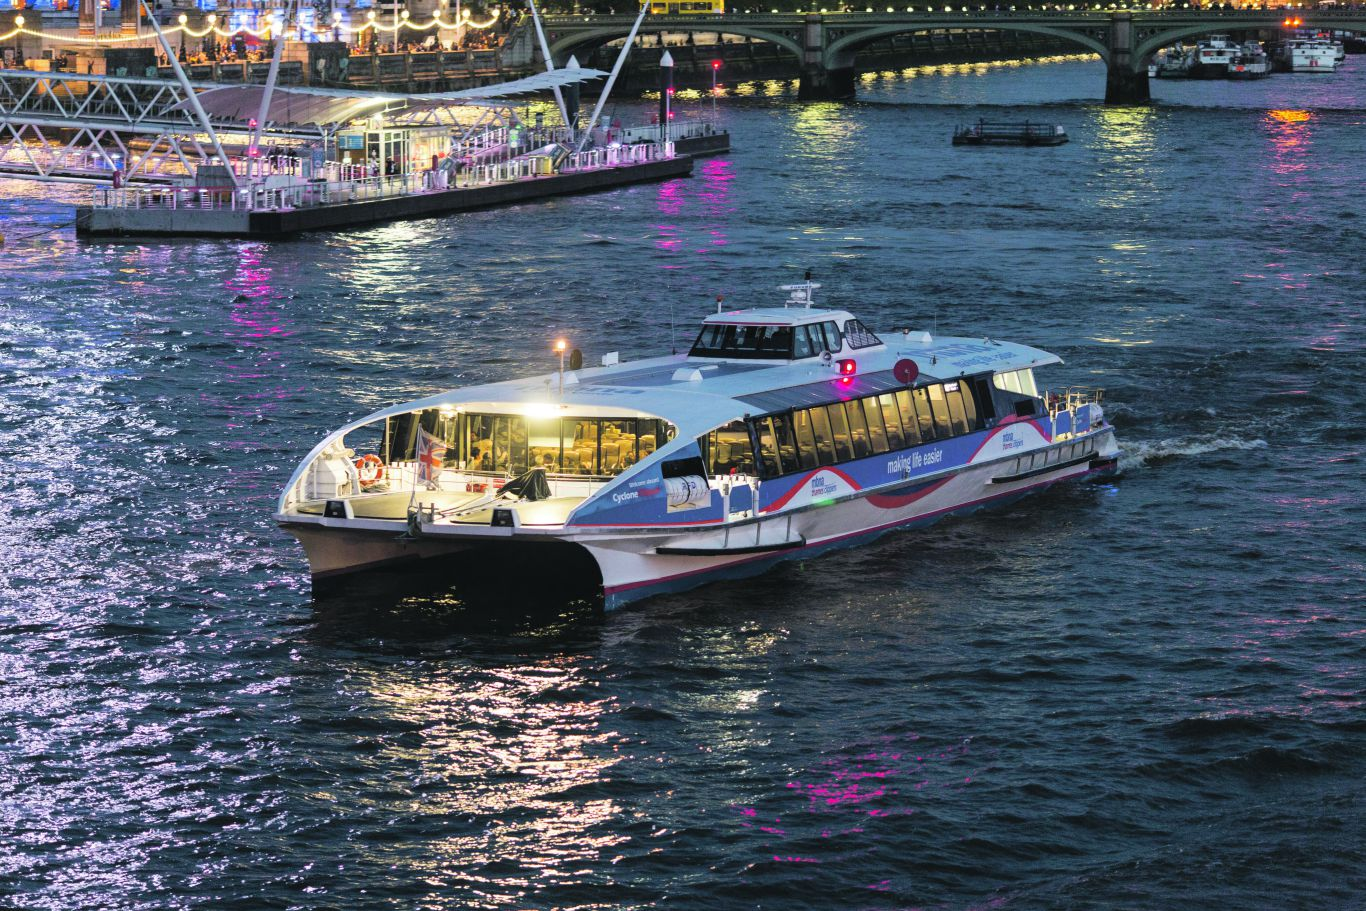 'The Thames is a bustling place.' Photo: PR